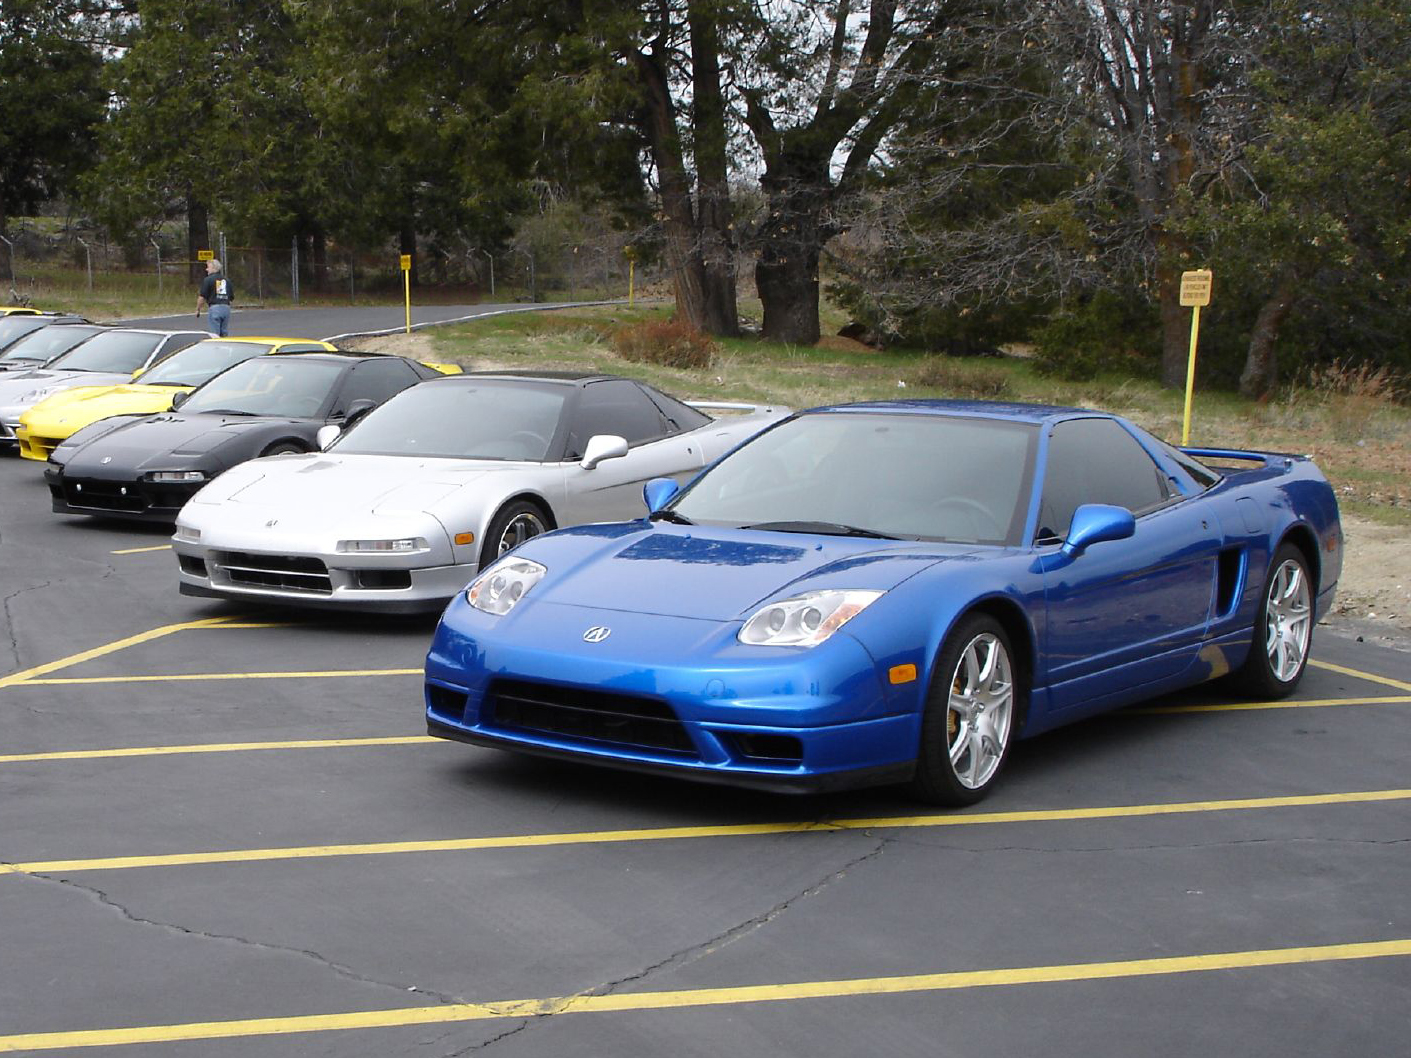 Honda Nsx First Generation Wikipedia 1992 Civic Spoiler